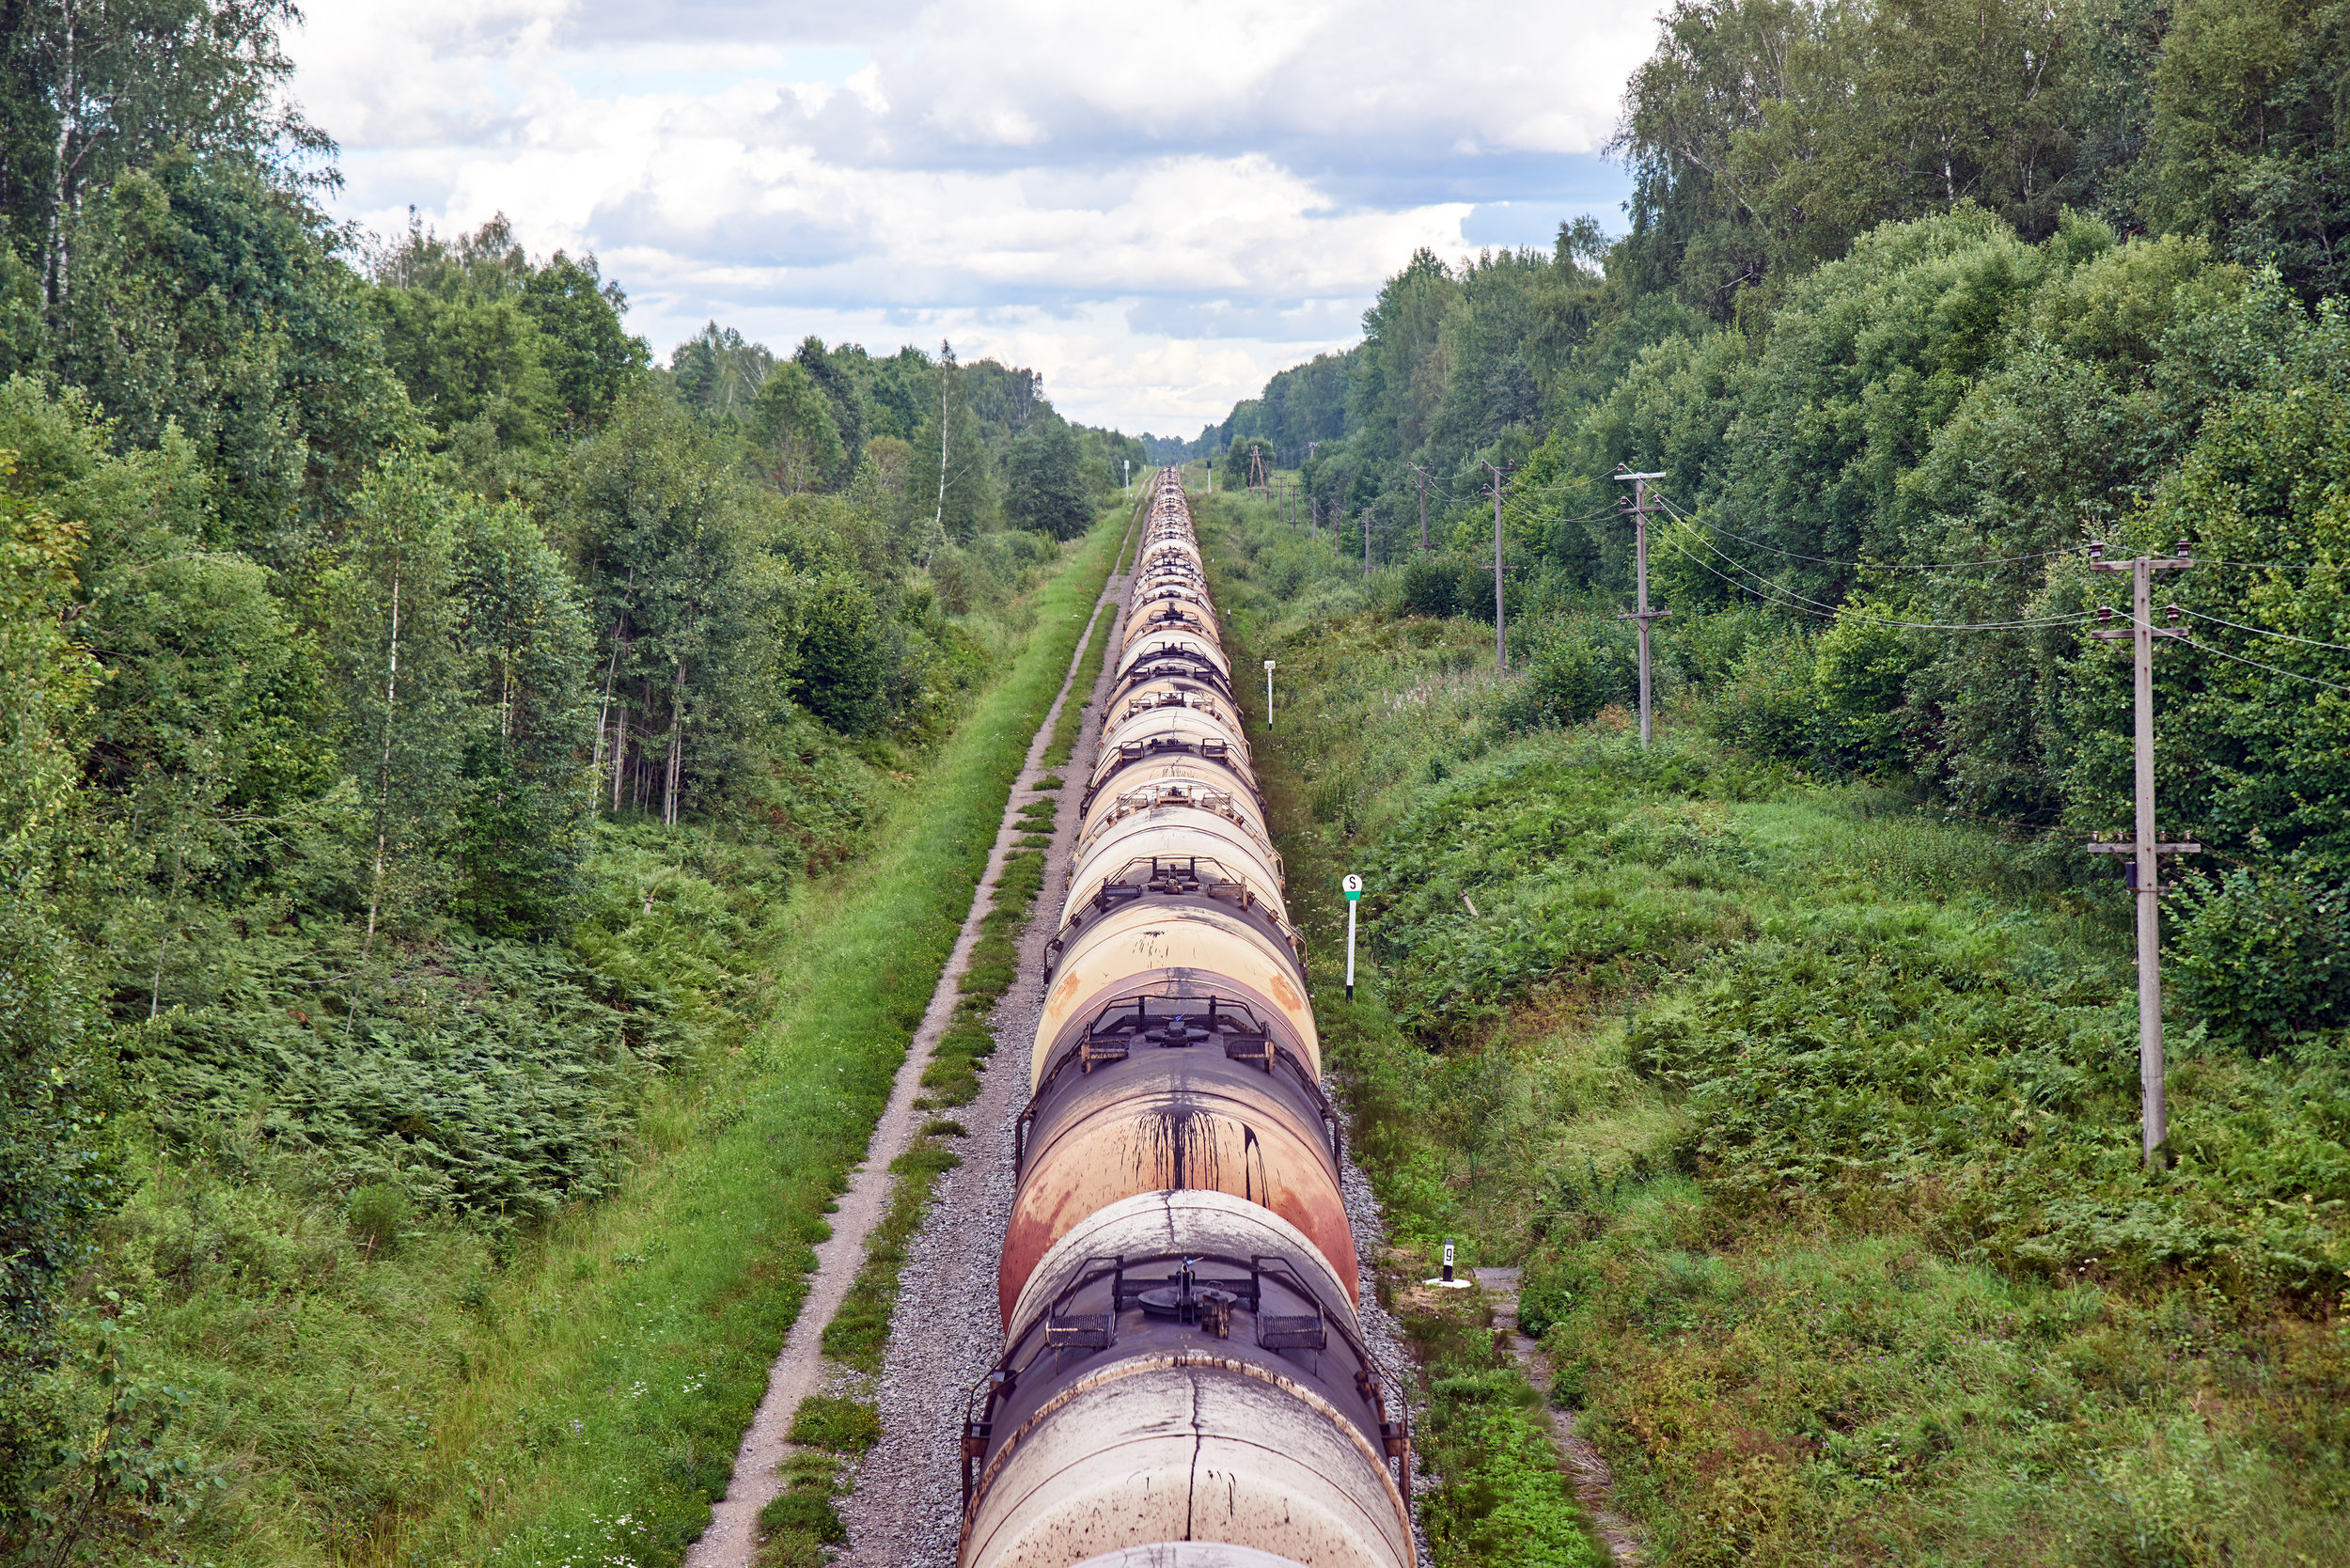 Set-of-train-tanks-with-oil-and-fuel-transport-by-rail---countryside-view-682538860_3866x2580.jpeg